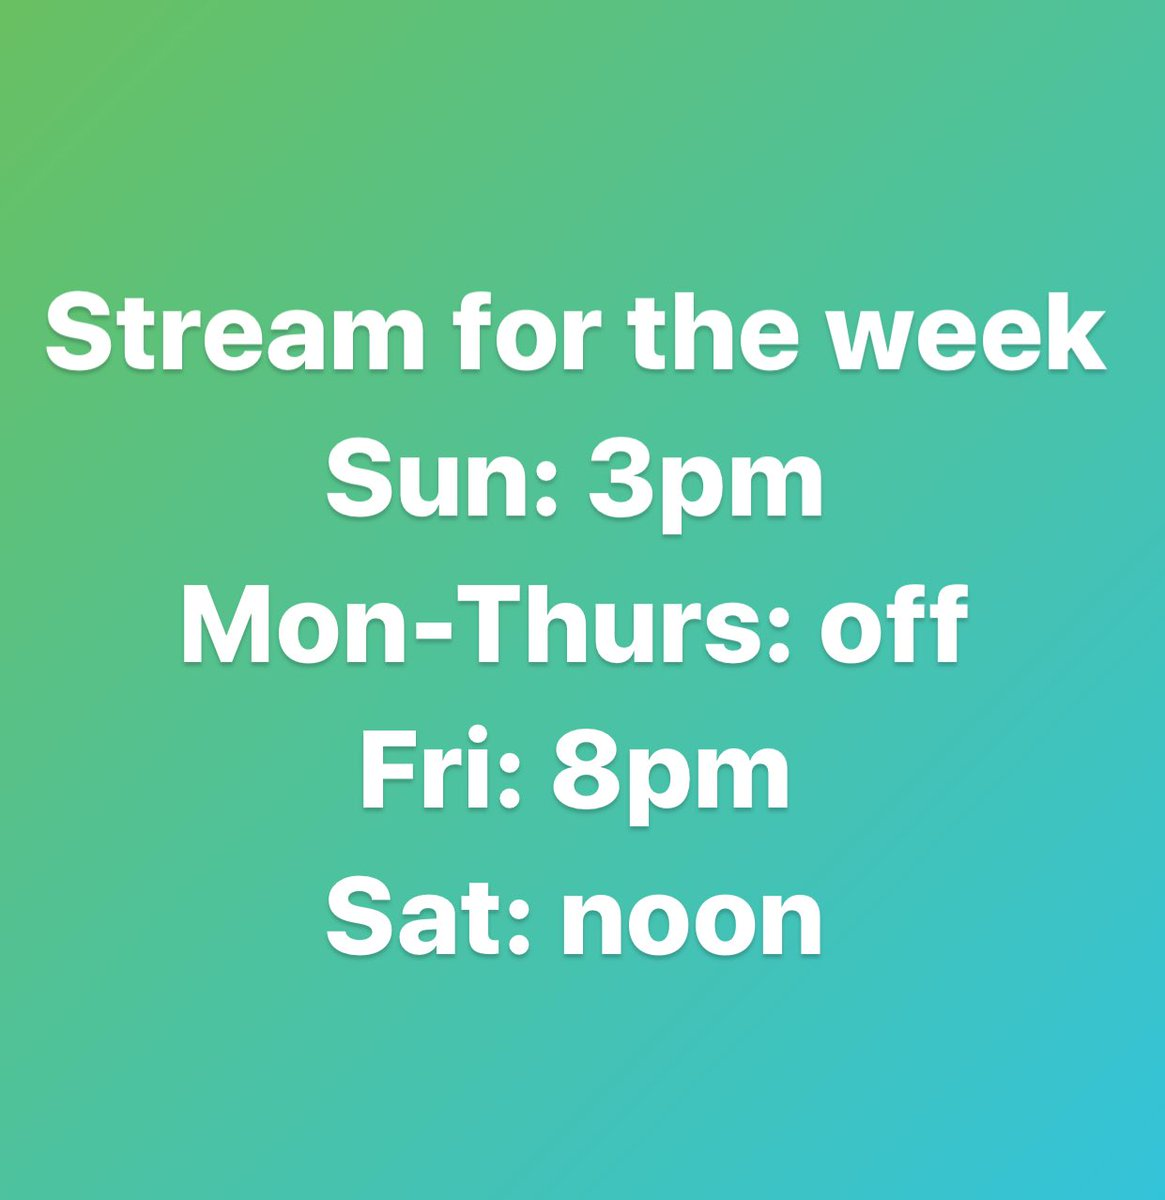 Schedule for the week! This is what it'll look like most of the time because of school. See you later today! #twitch #twitchaffiliate #digitalartist #animeart #gamer #twitchcommunity #twitchstreamerpic.twitter.com/gCAjSpbBBa